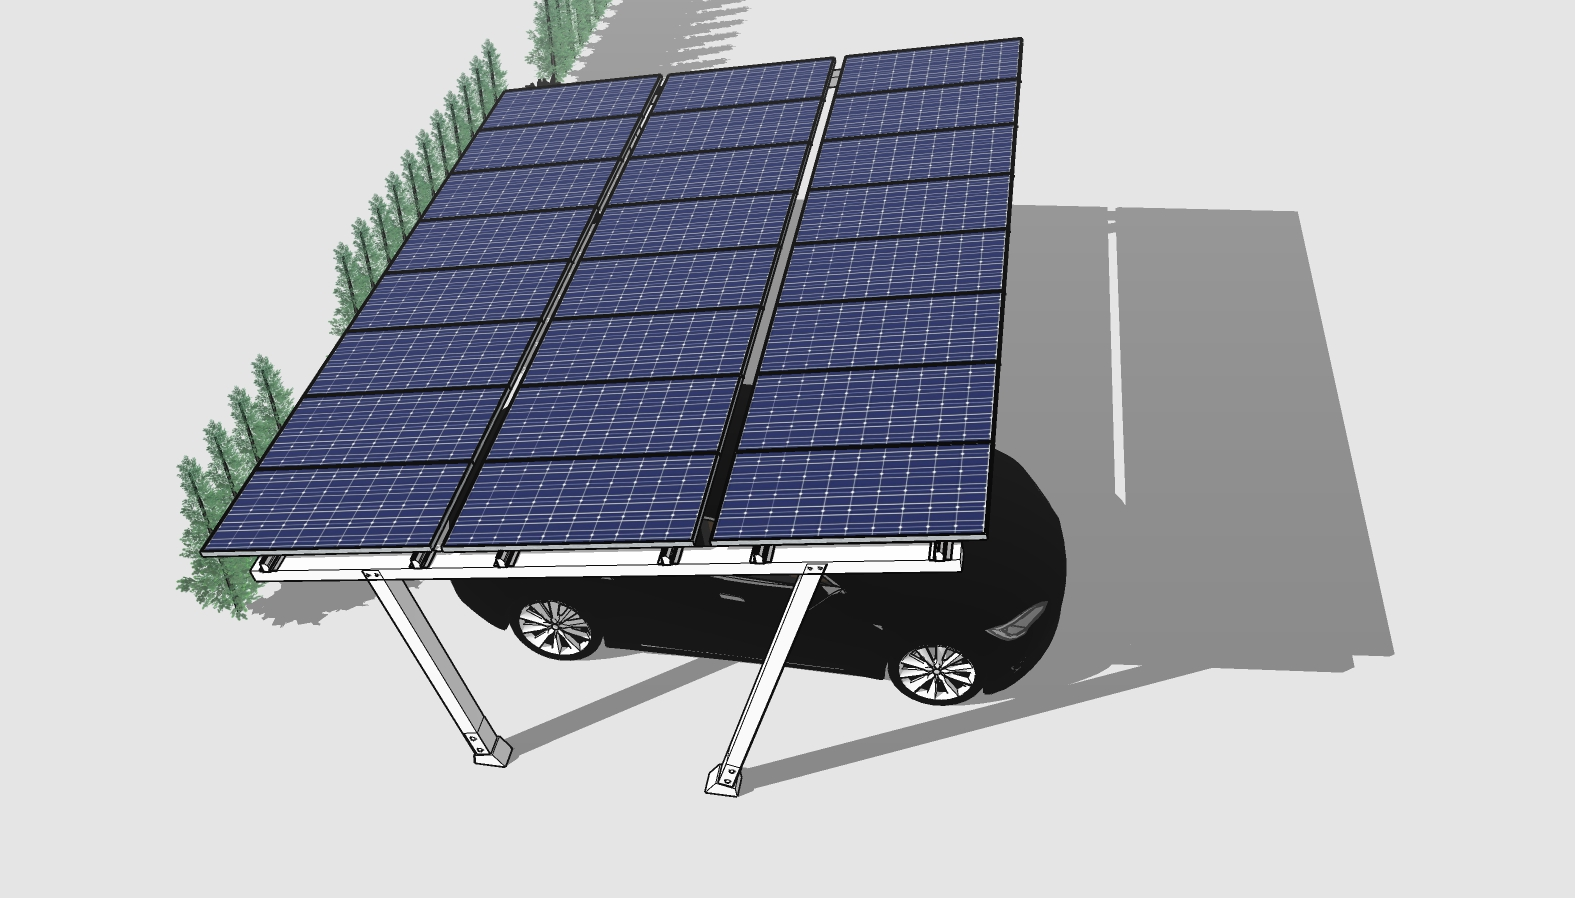 solar panels above a Tesla car